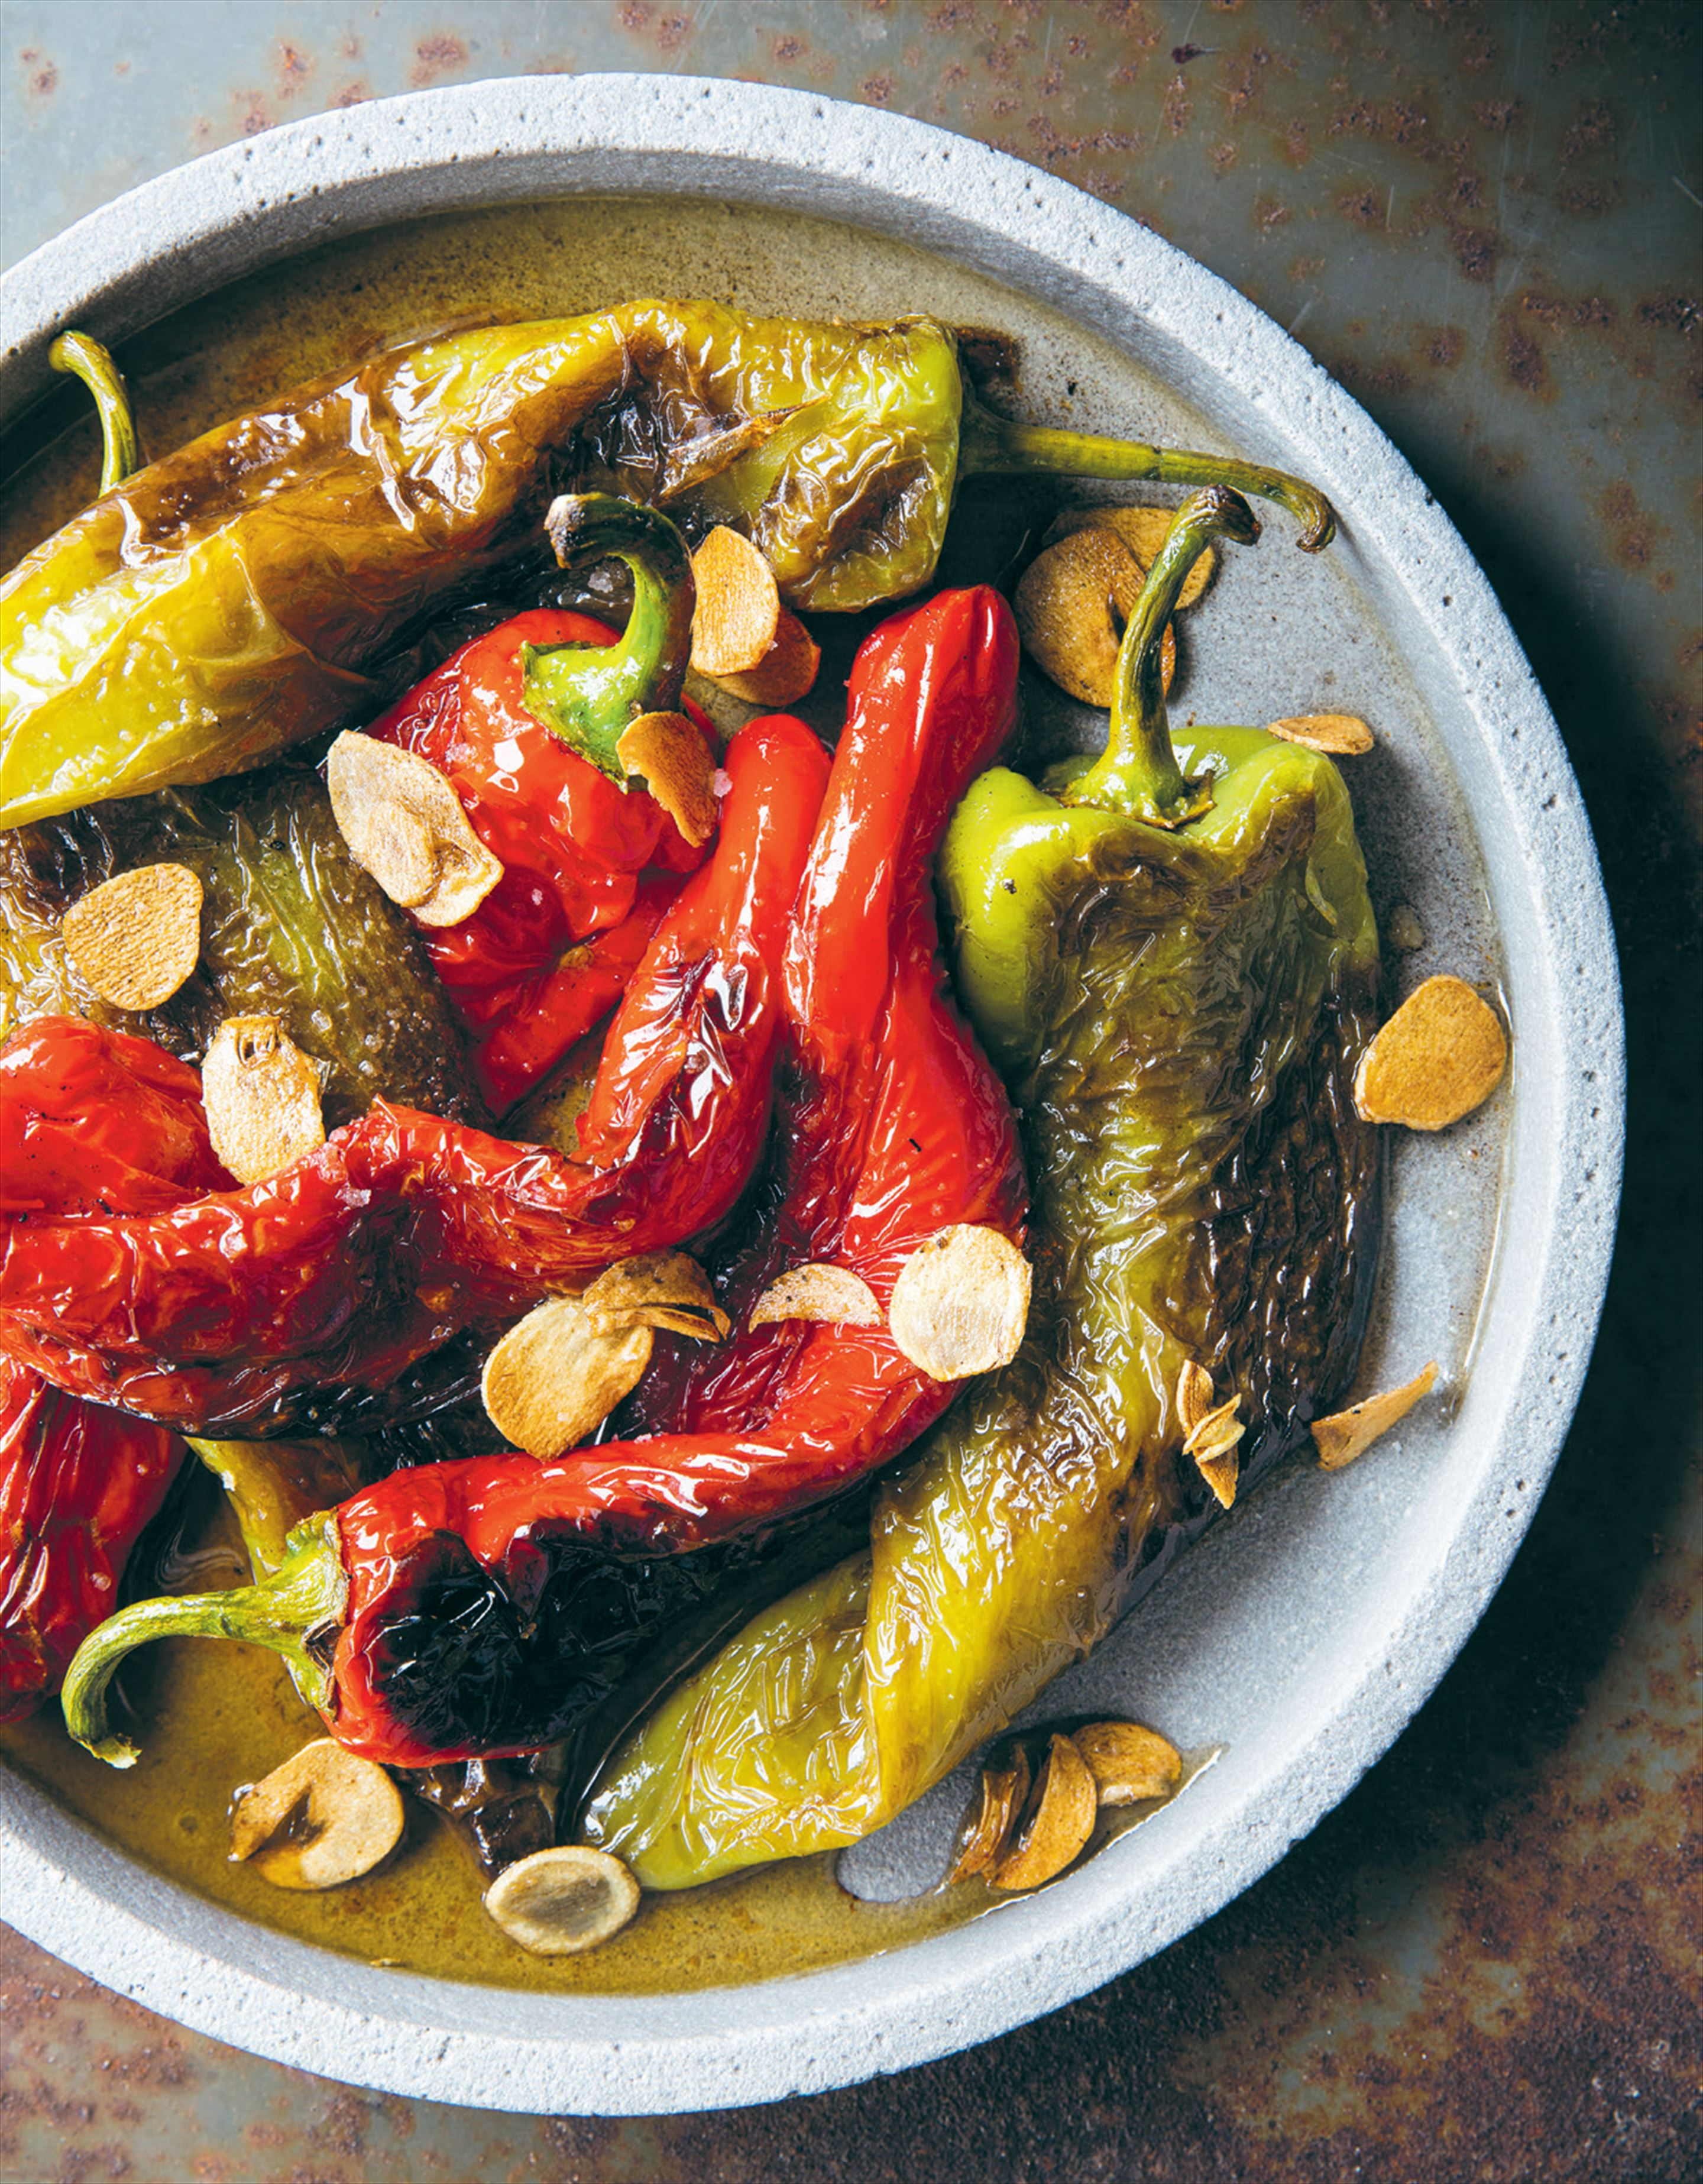 Pan-fried peppers with crispy garlic